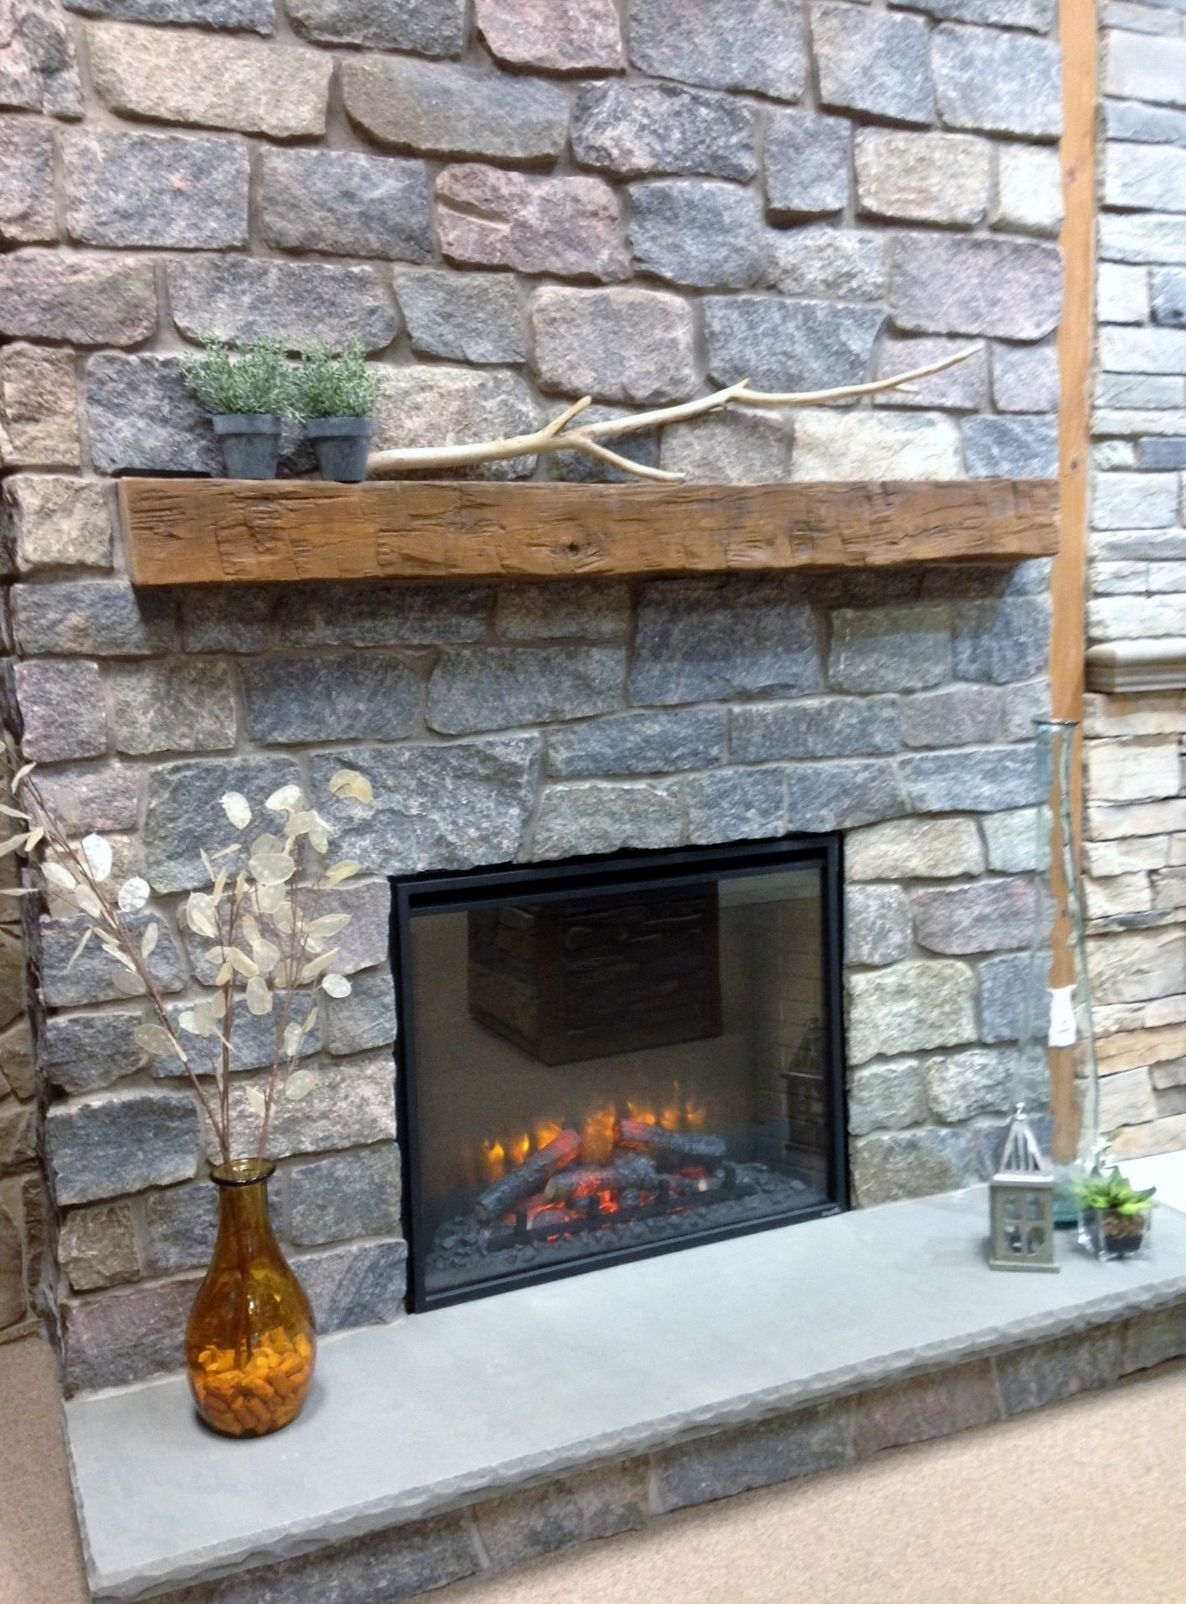 quarry cut natural stone fireplace surround, barn beam mantel